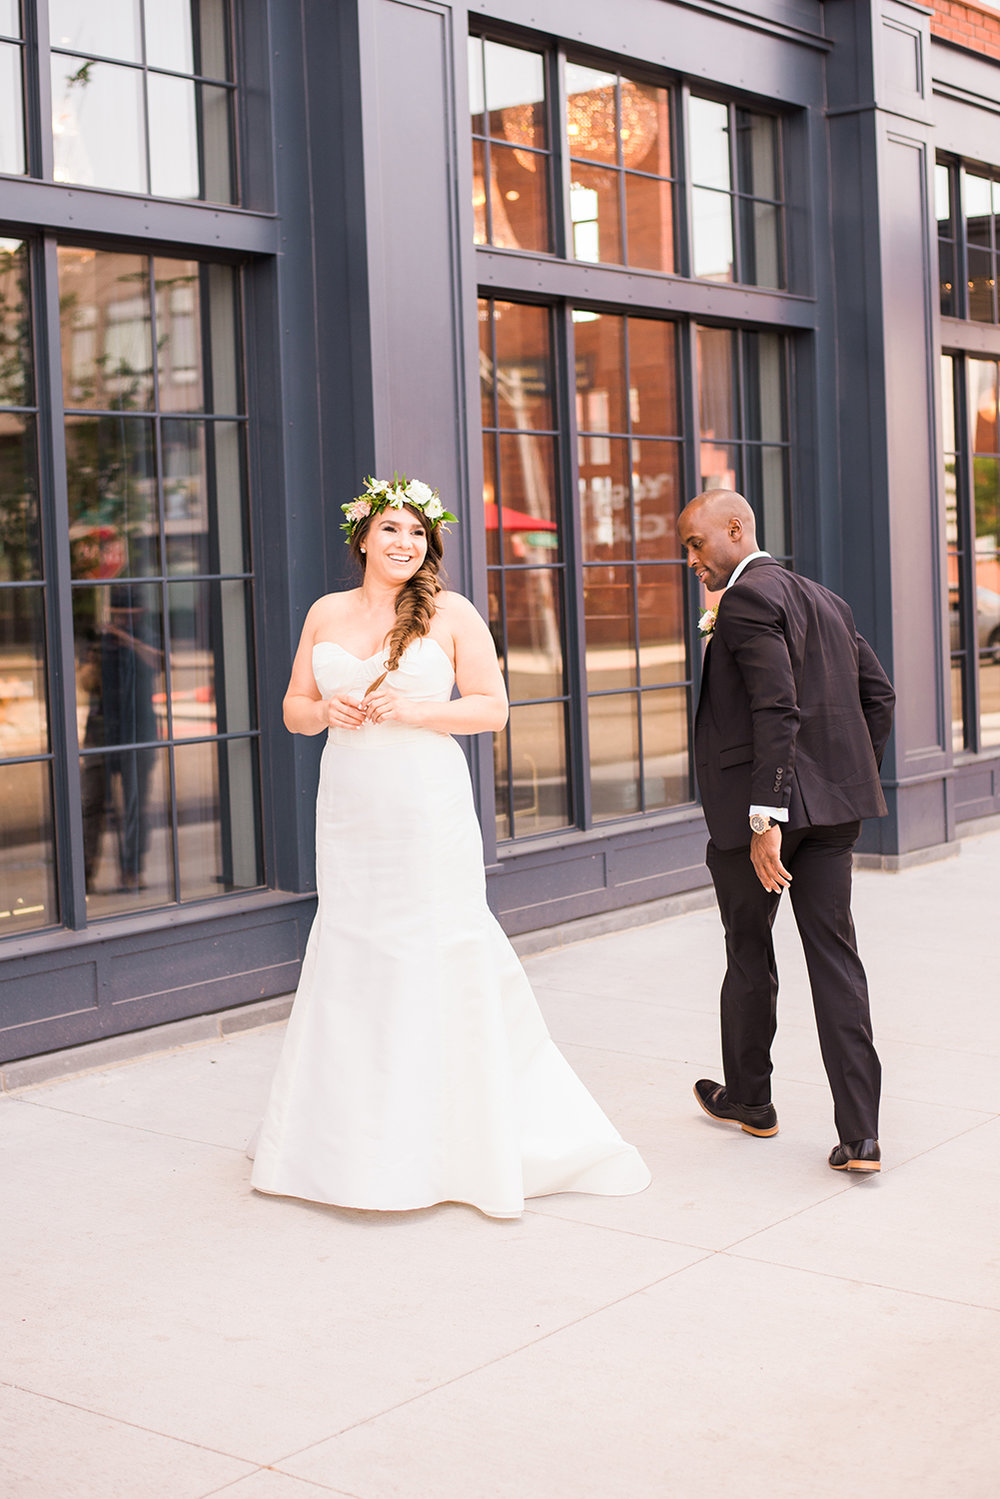 boho-denver-wedding-denver-wedding-photographer-j-s-5.jpg